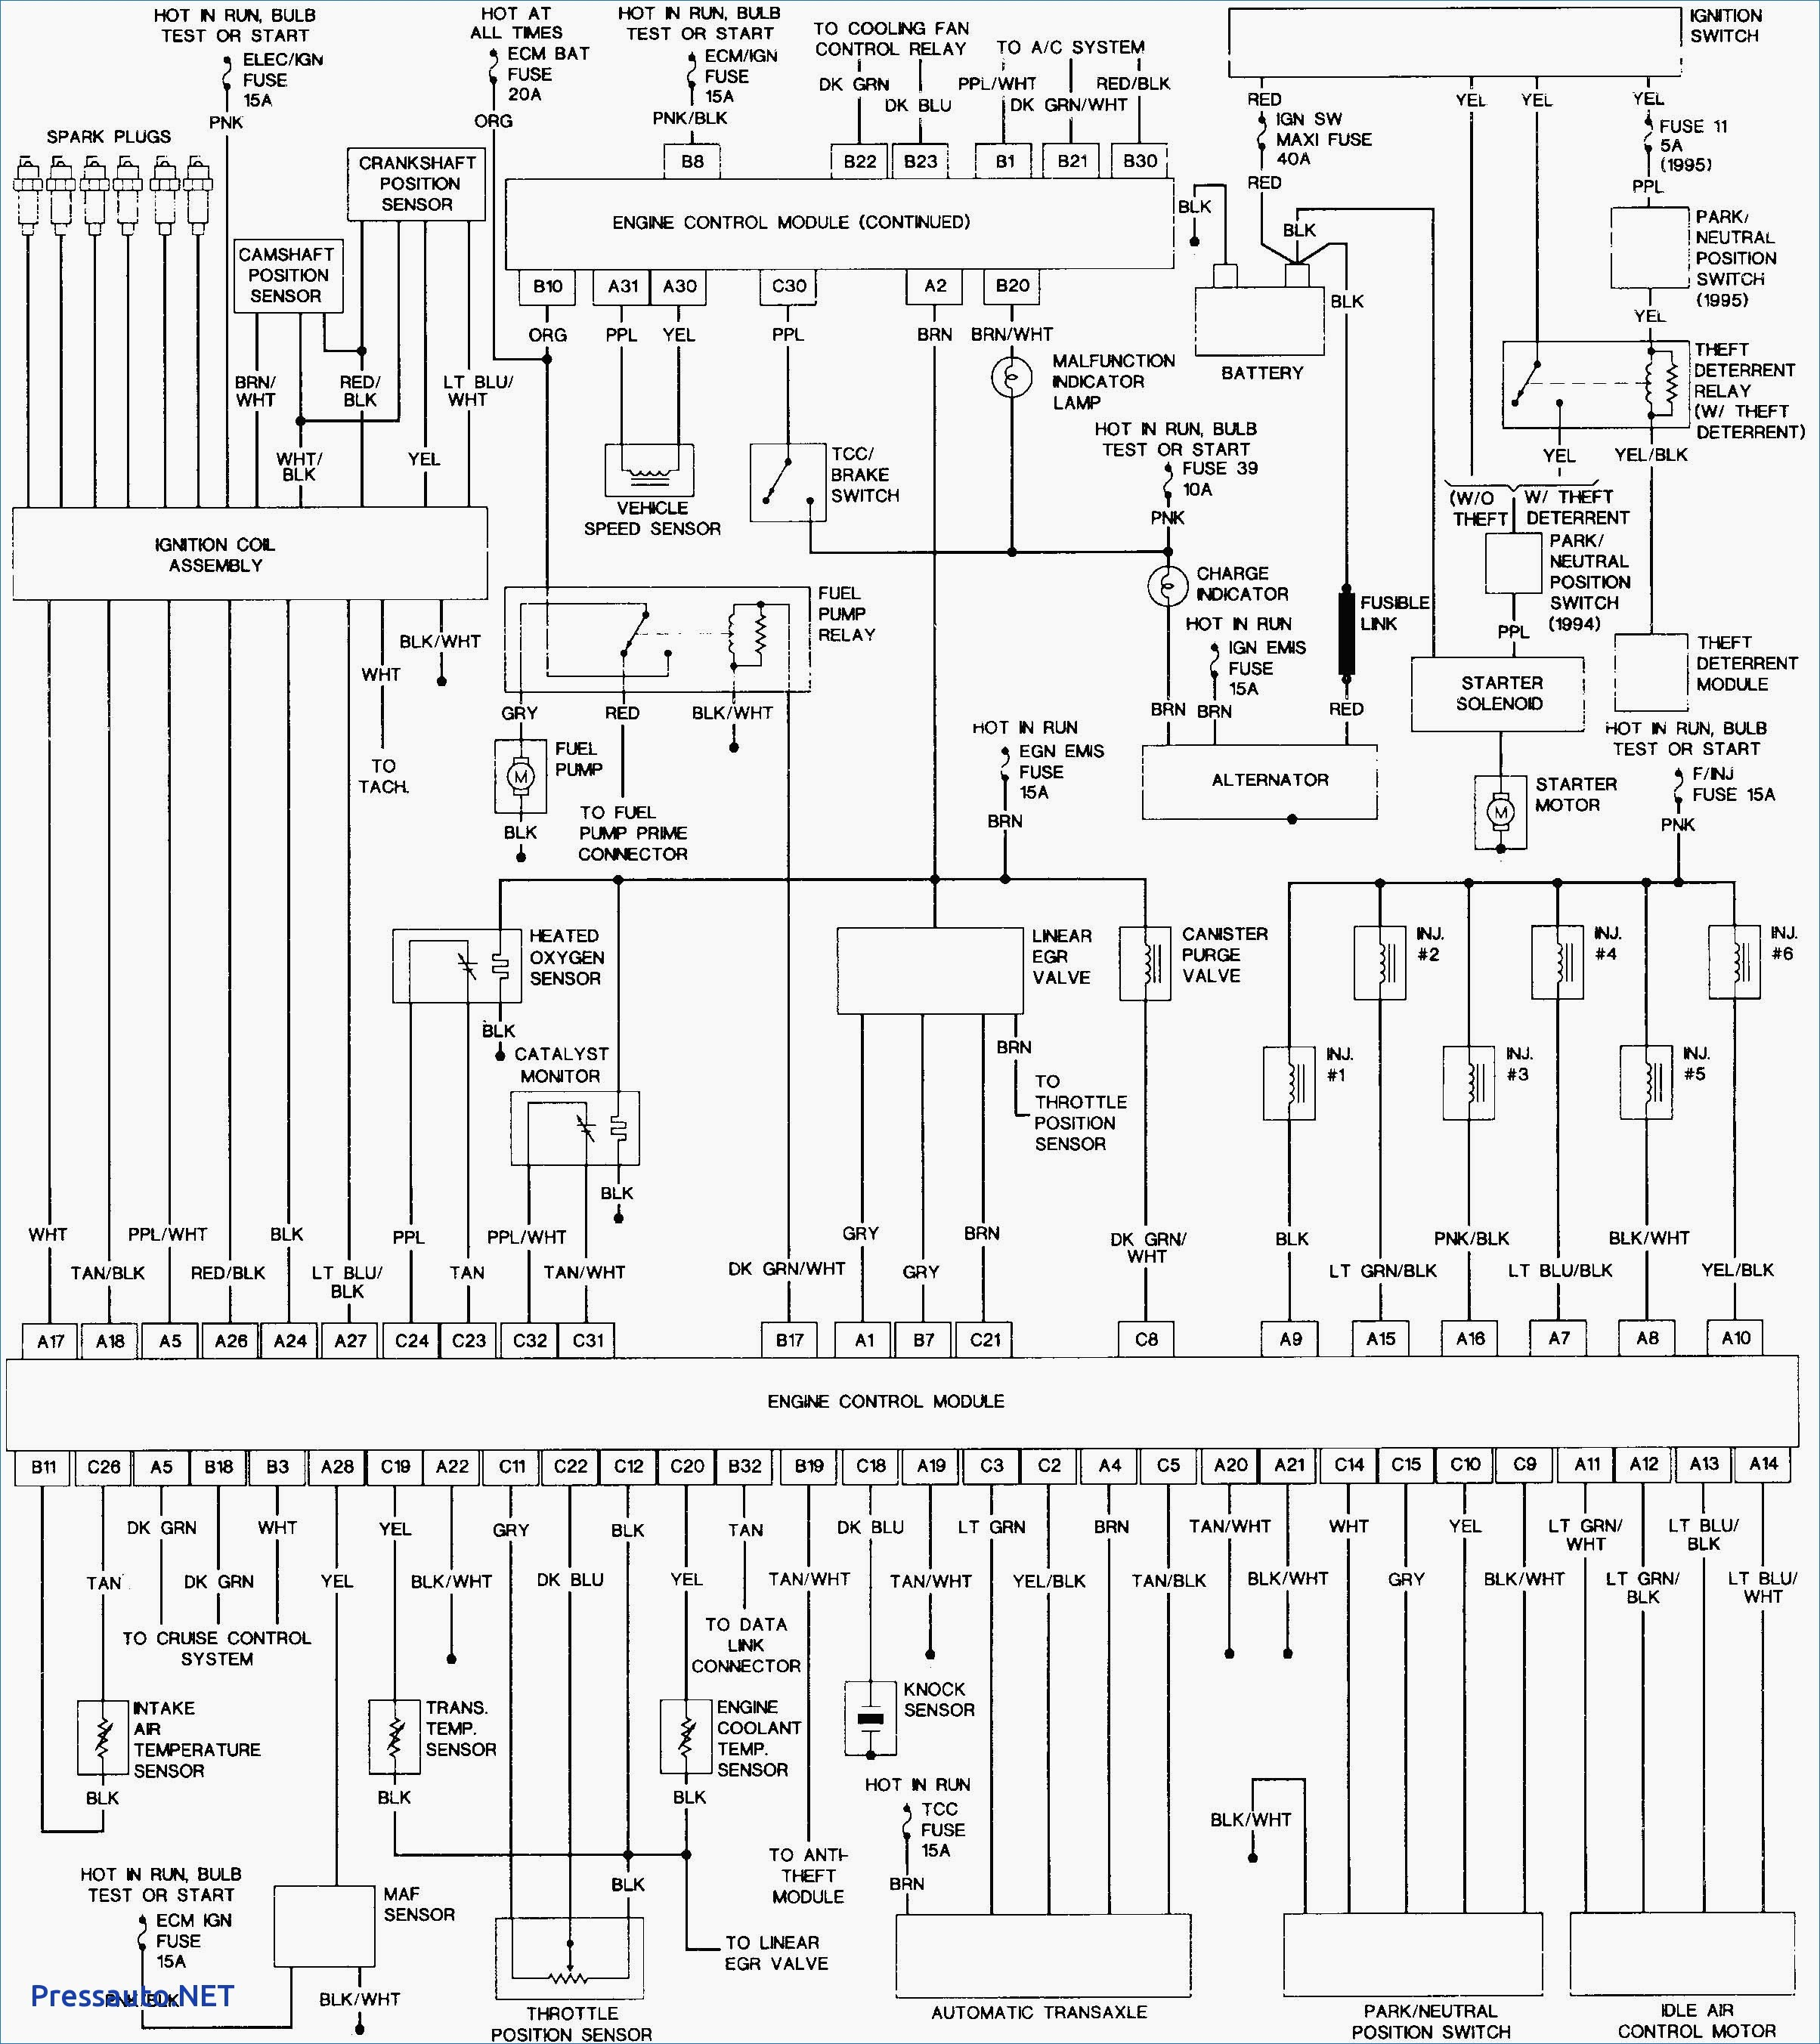 1995 vw jetta 2 0 engine diagram wiring diagram  2001 tdi engine diagram schematics online